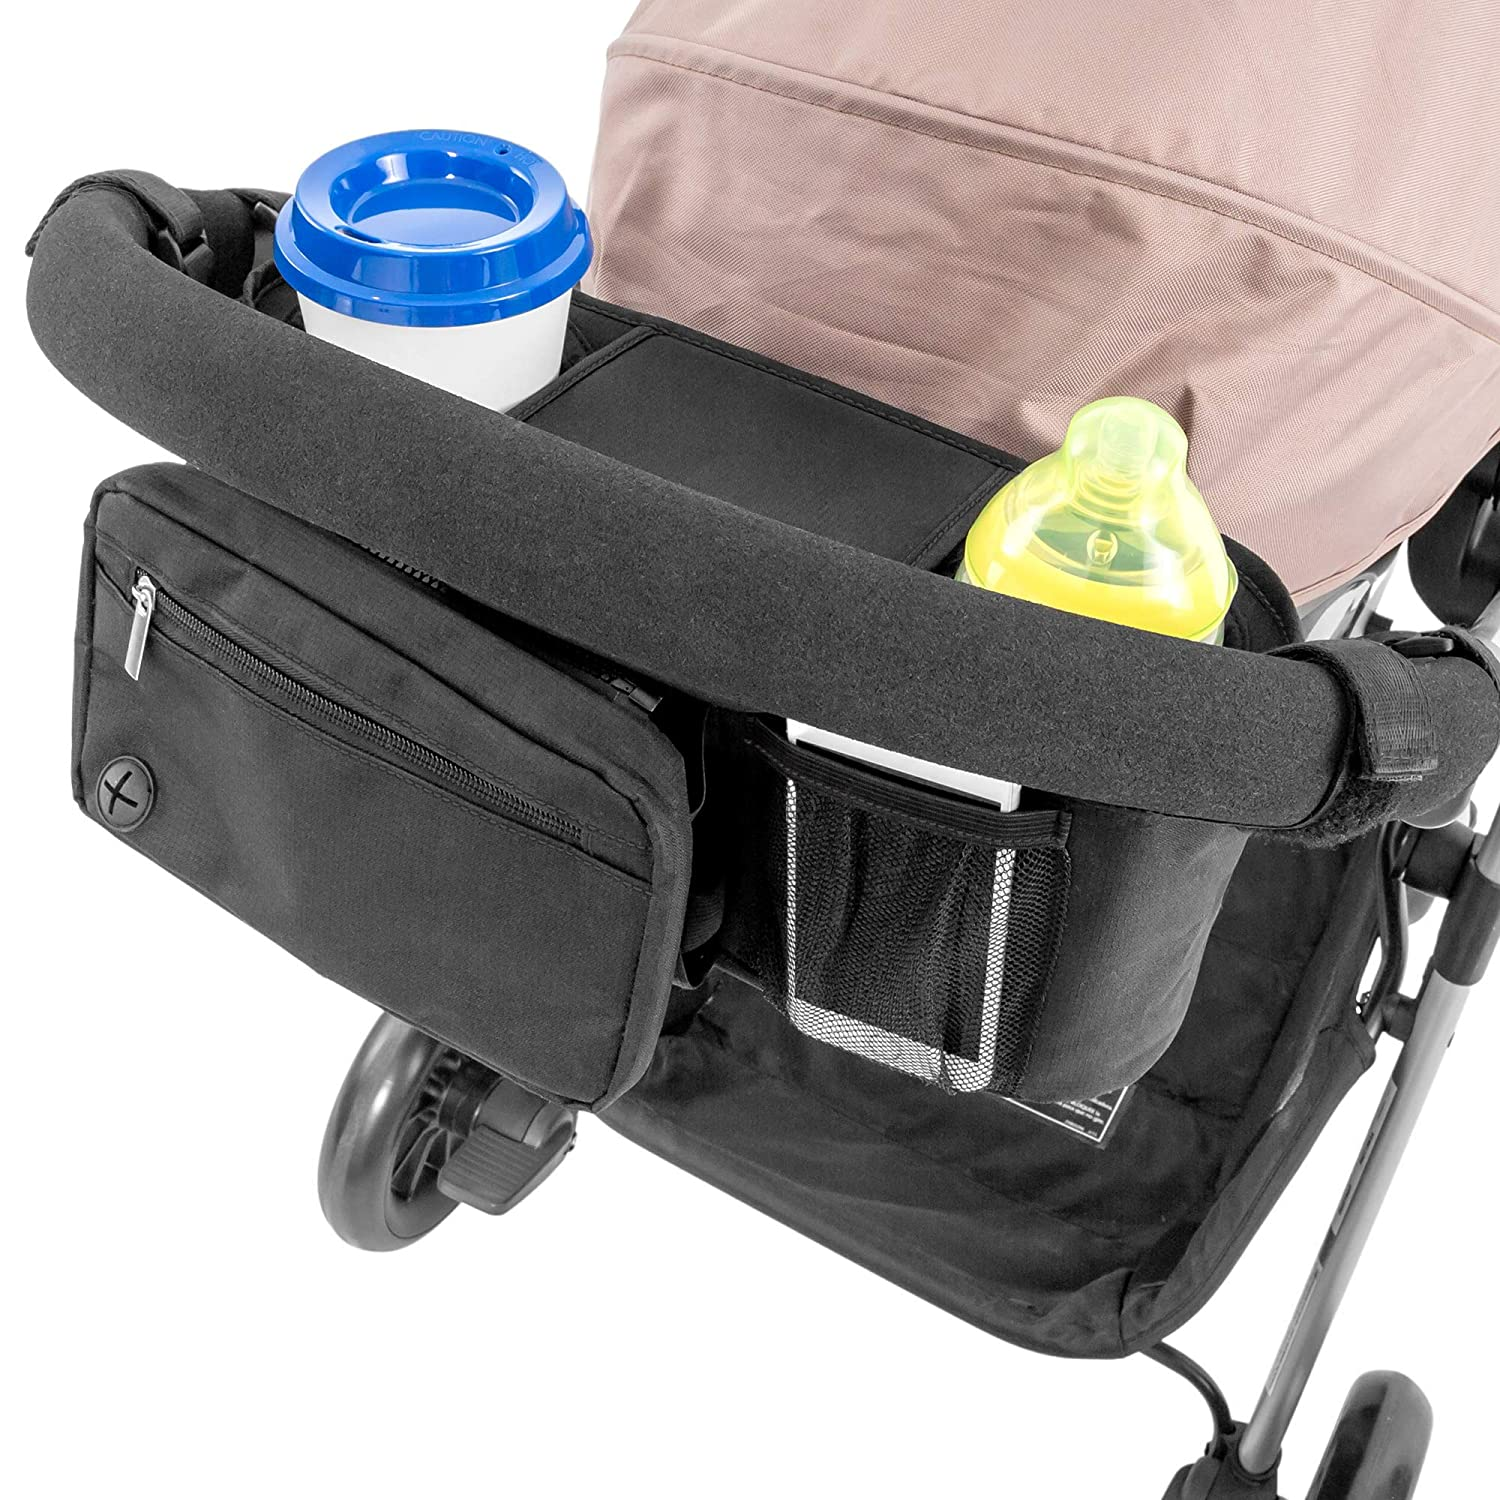 Lusso Raleigh Mall Max 83% OFF Gear Stroller Organizer With Cup Stroll All Holders - Fits